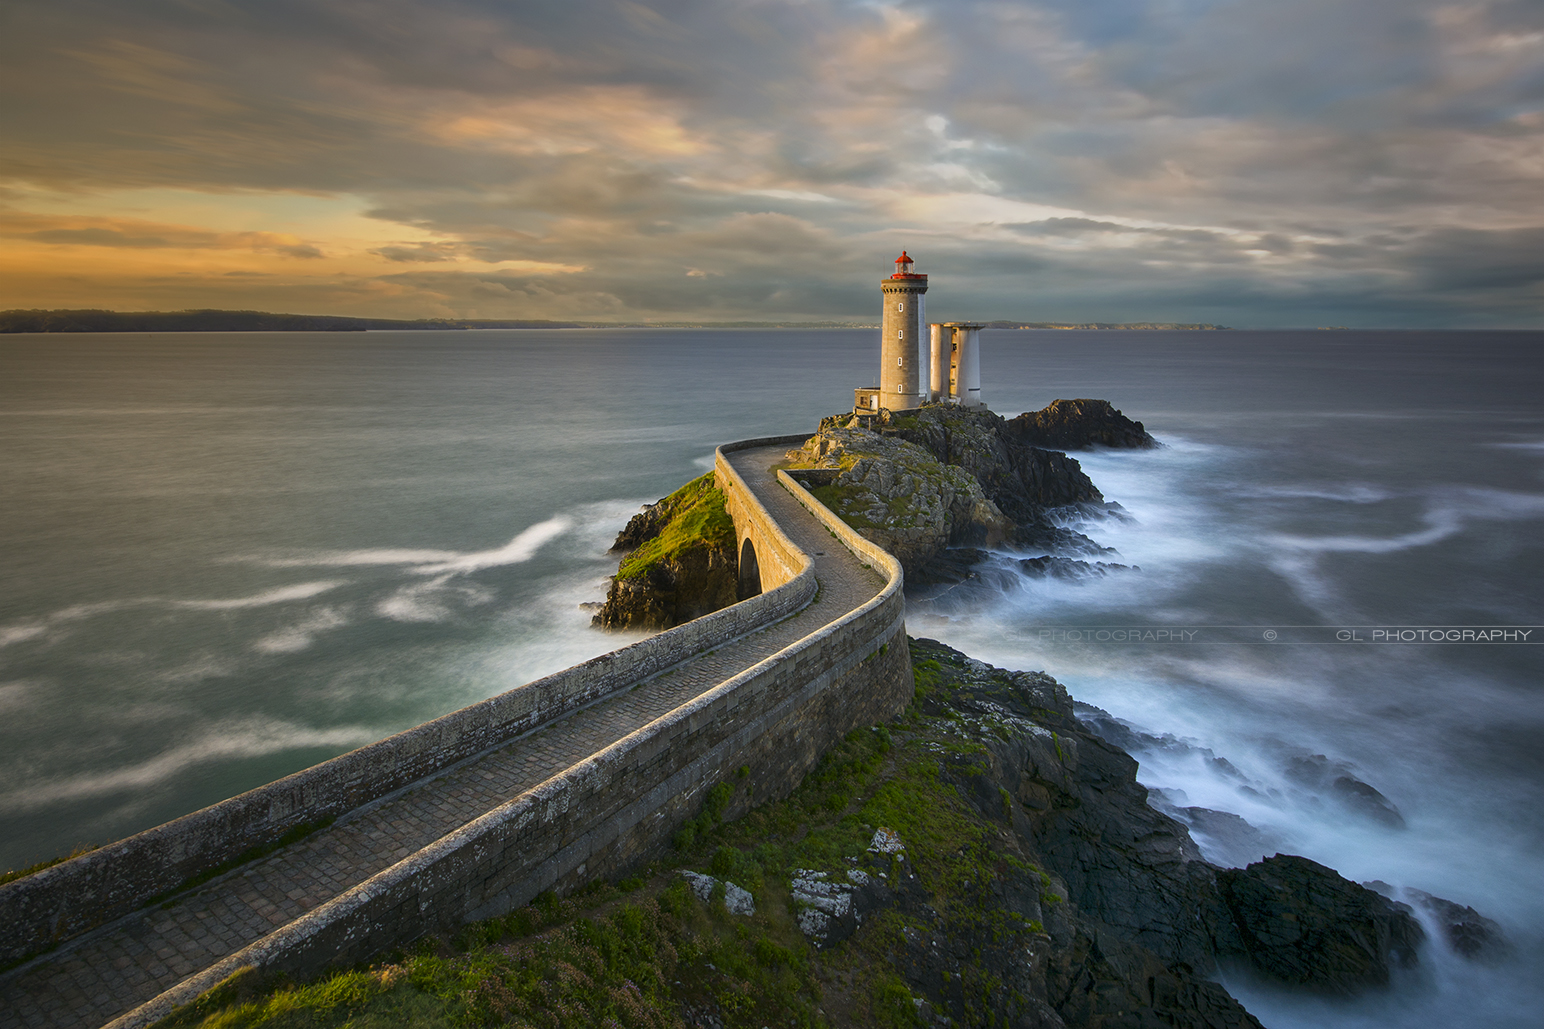 Le phare du Petit minou, France